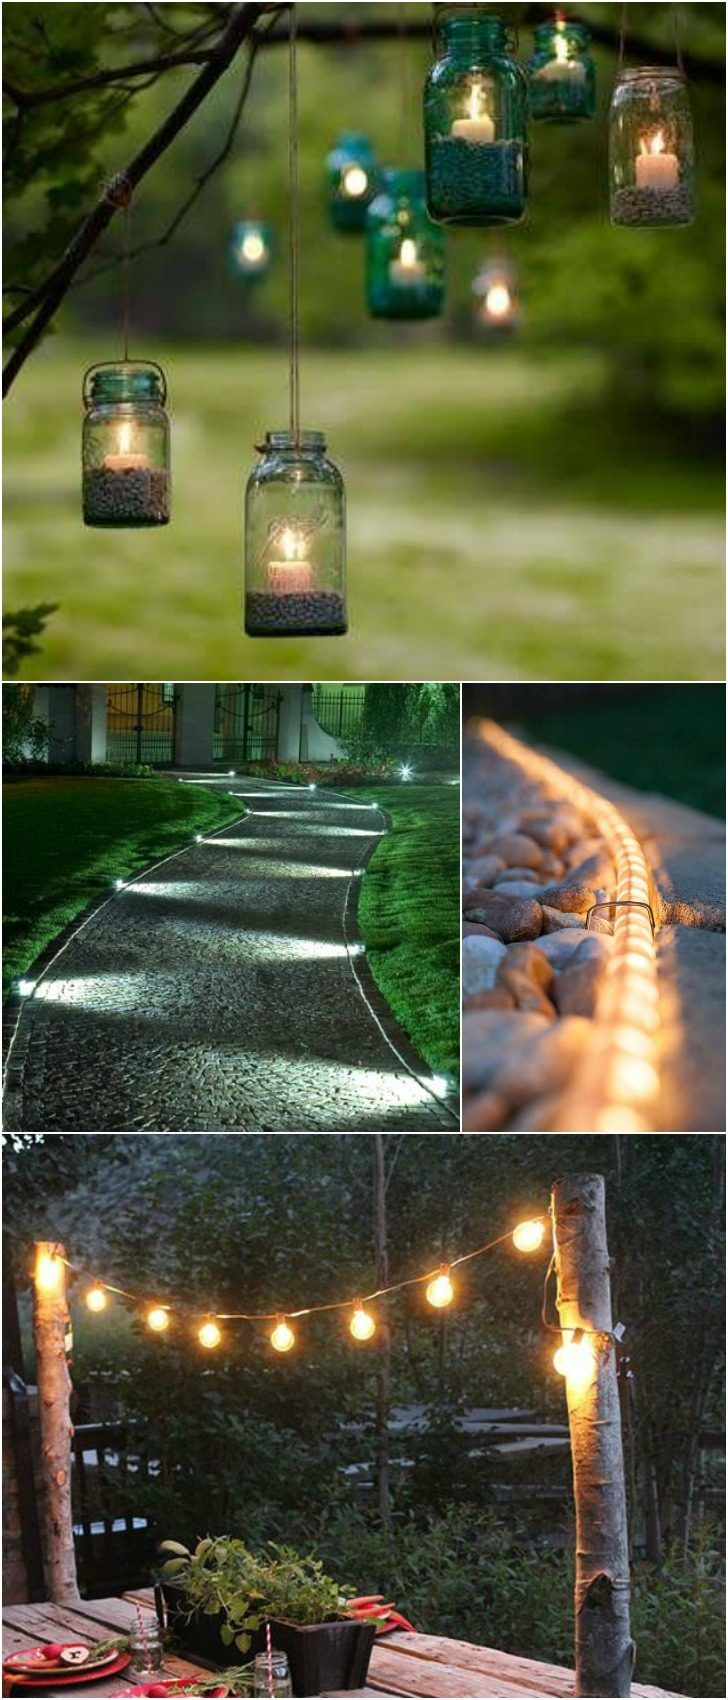 Diy Gardening Ideas 54 diy backyard design ideas diy backyard decor tips 10 Outdoor Lighting Ideas For Your Garden Landscape 5 Is Really Cute